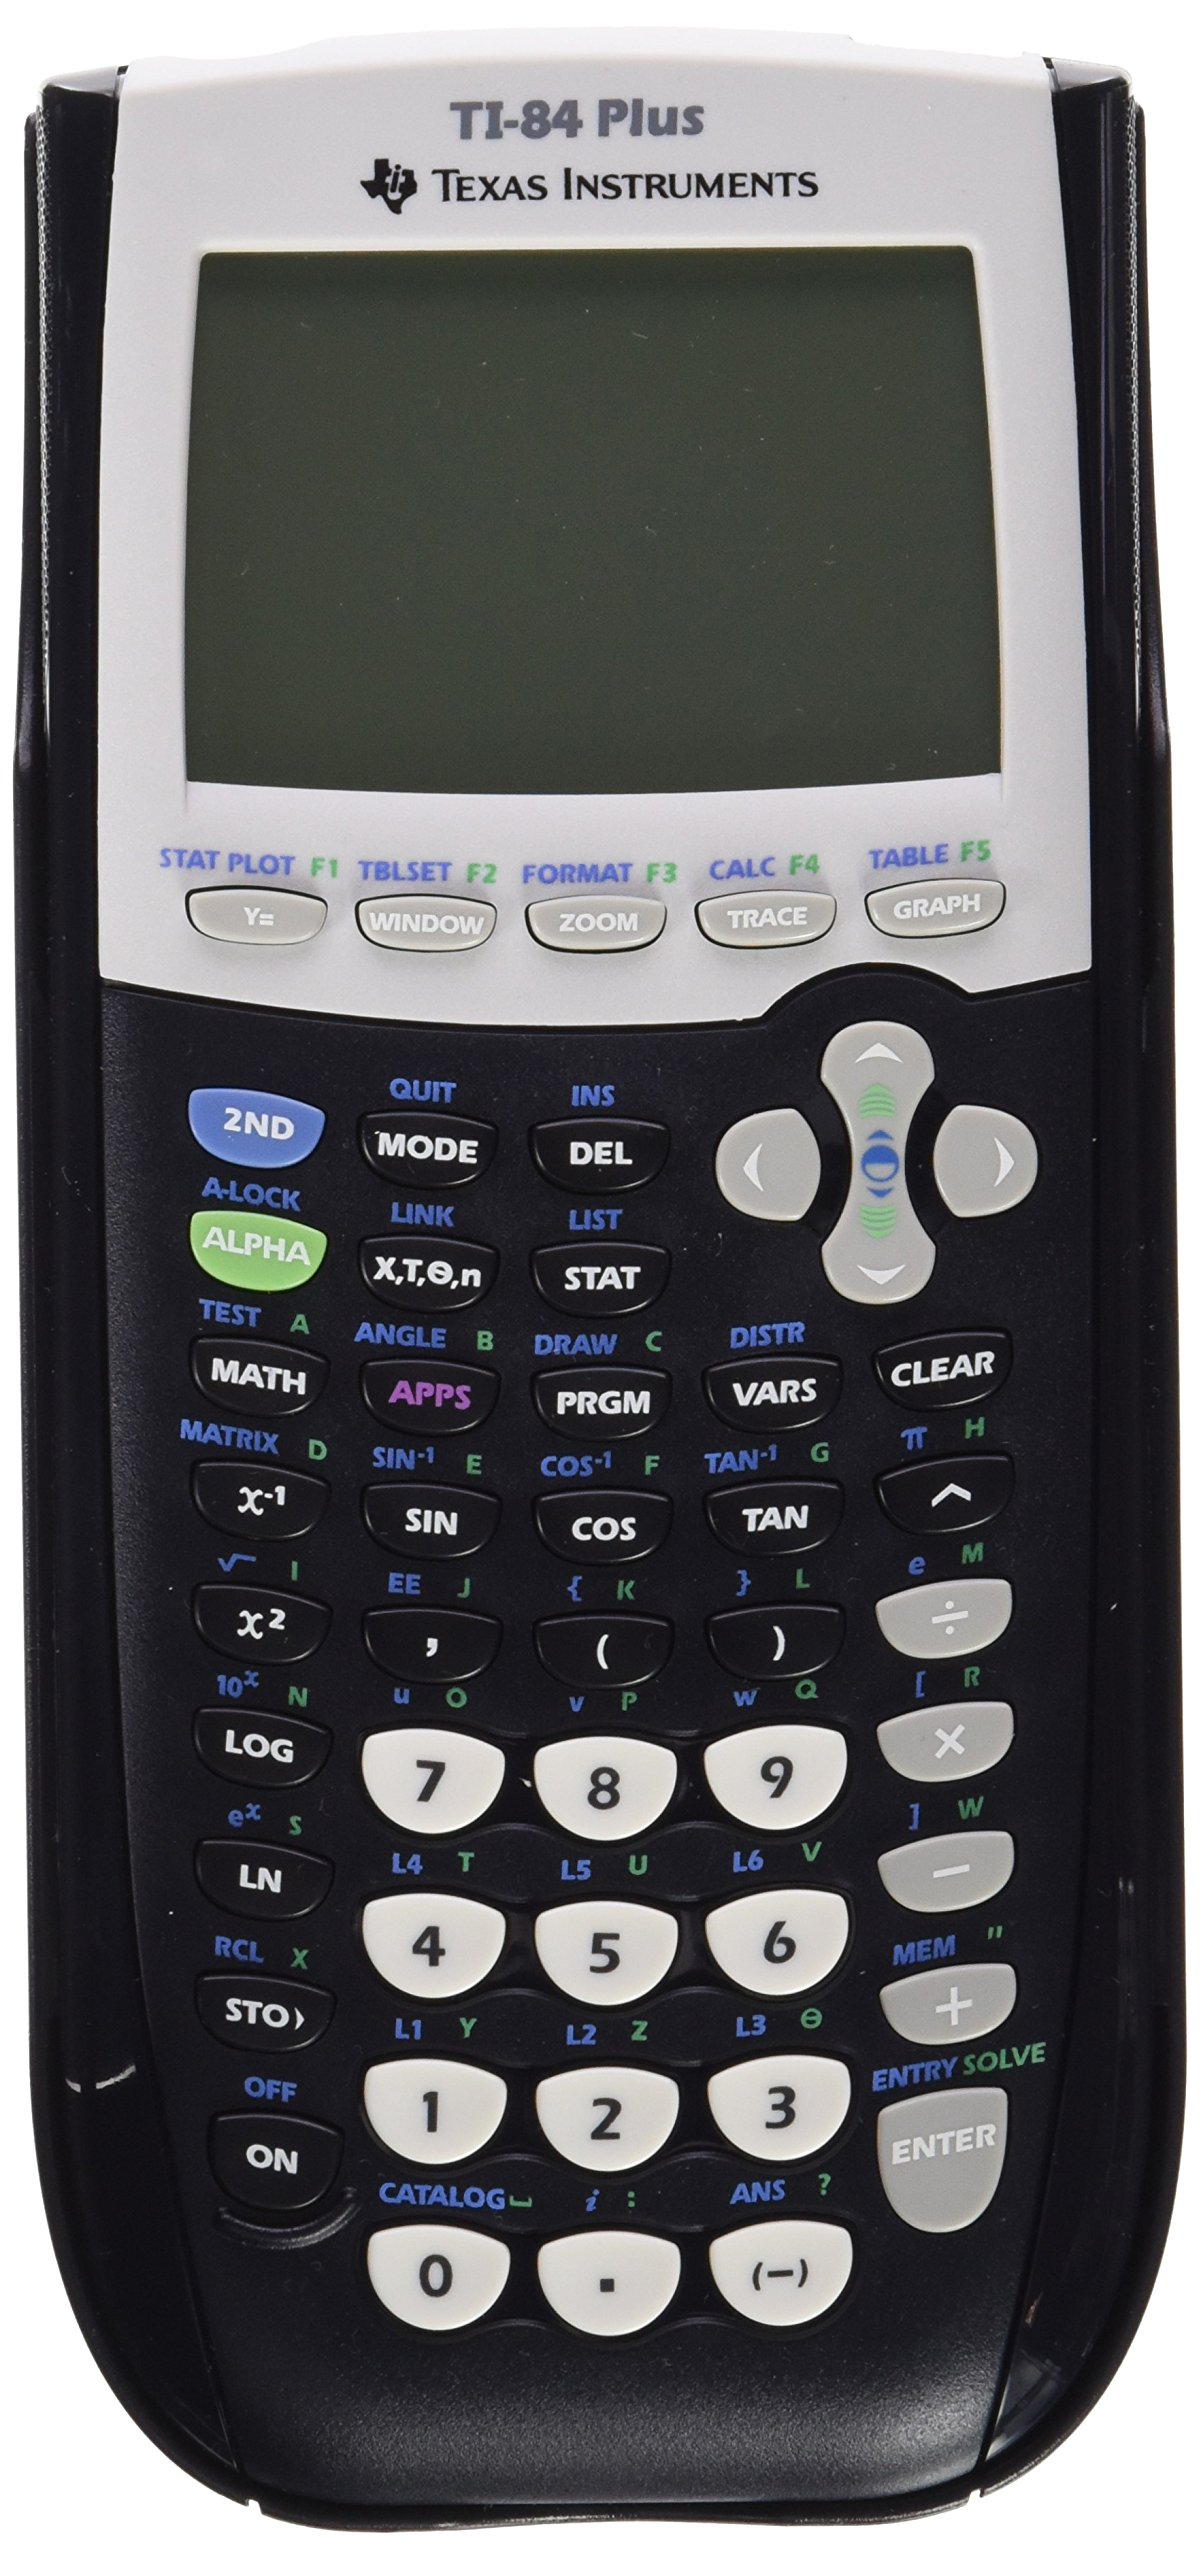 TEXTI84PLUS - Texas Instruments TI-84Plus Programmable Graphing Calculator by Texas Instruments